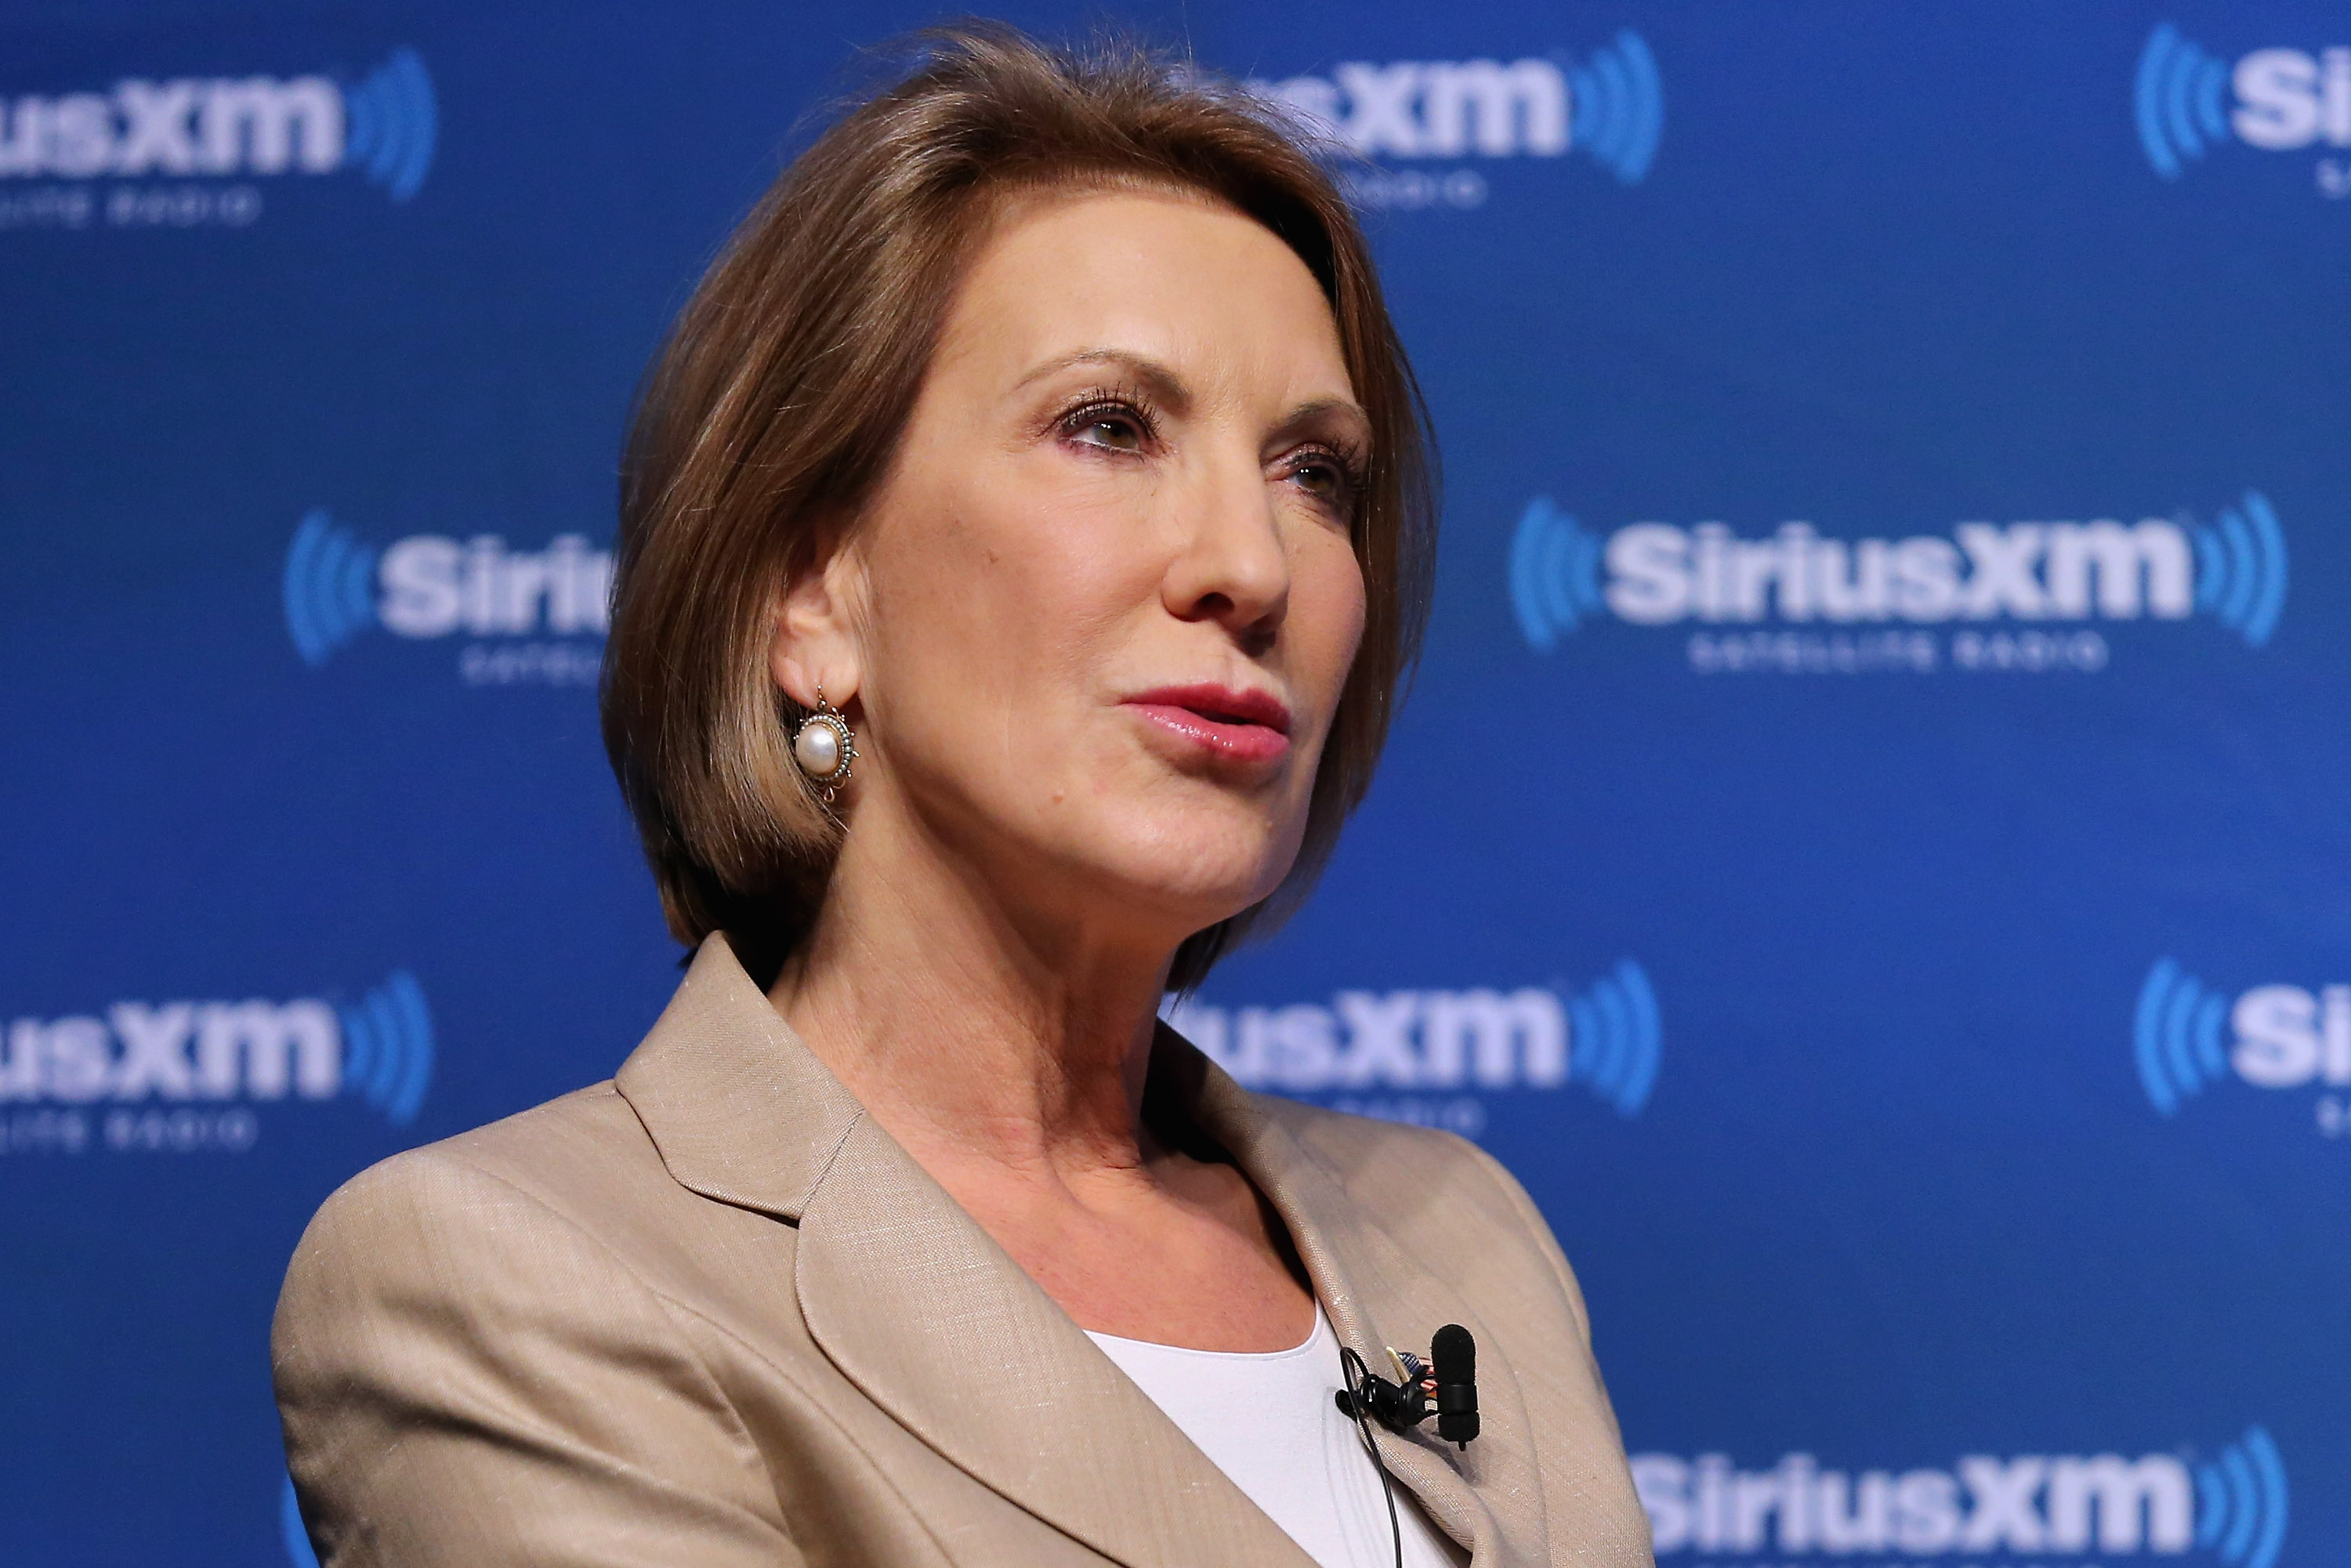 Carly Fiorina did a 4-minute riff on climate change. Everything she said was wrong.